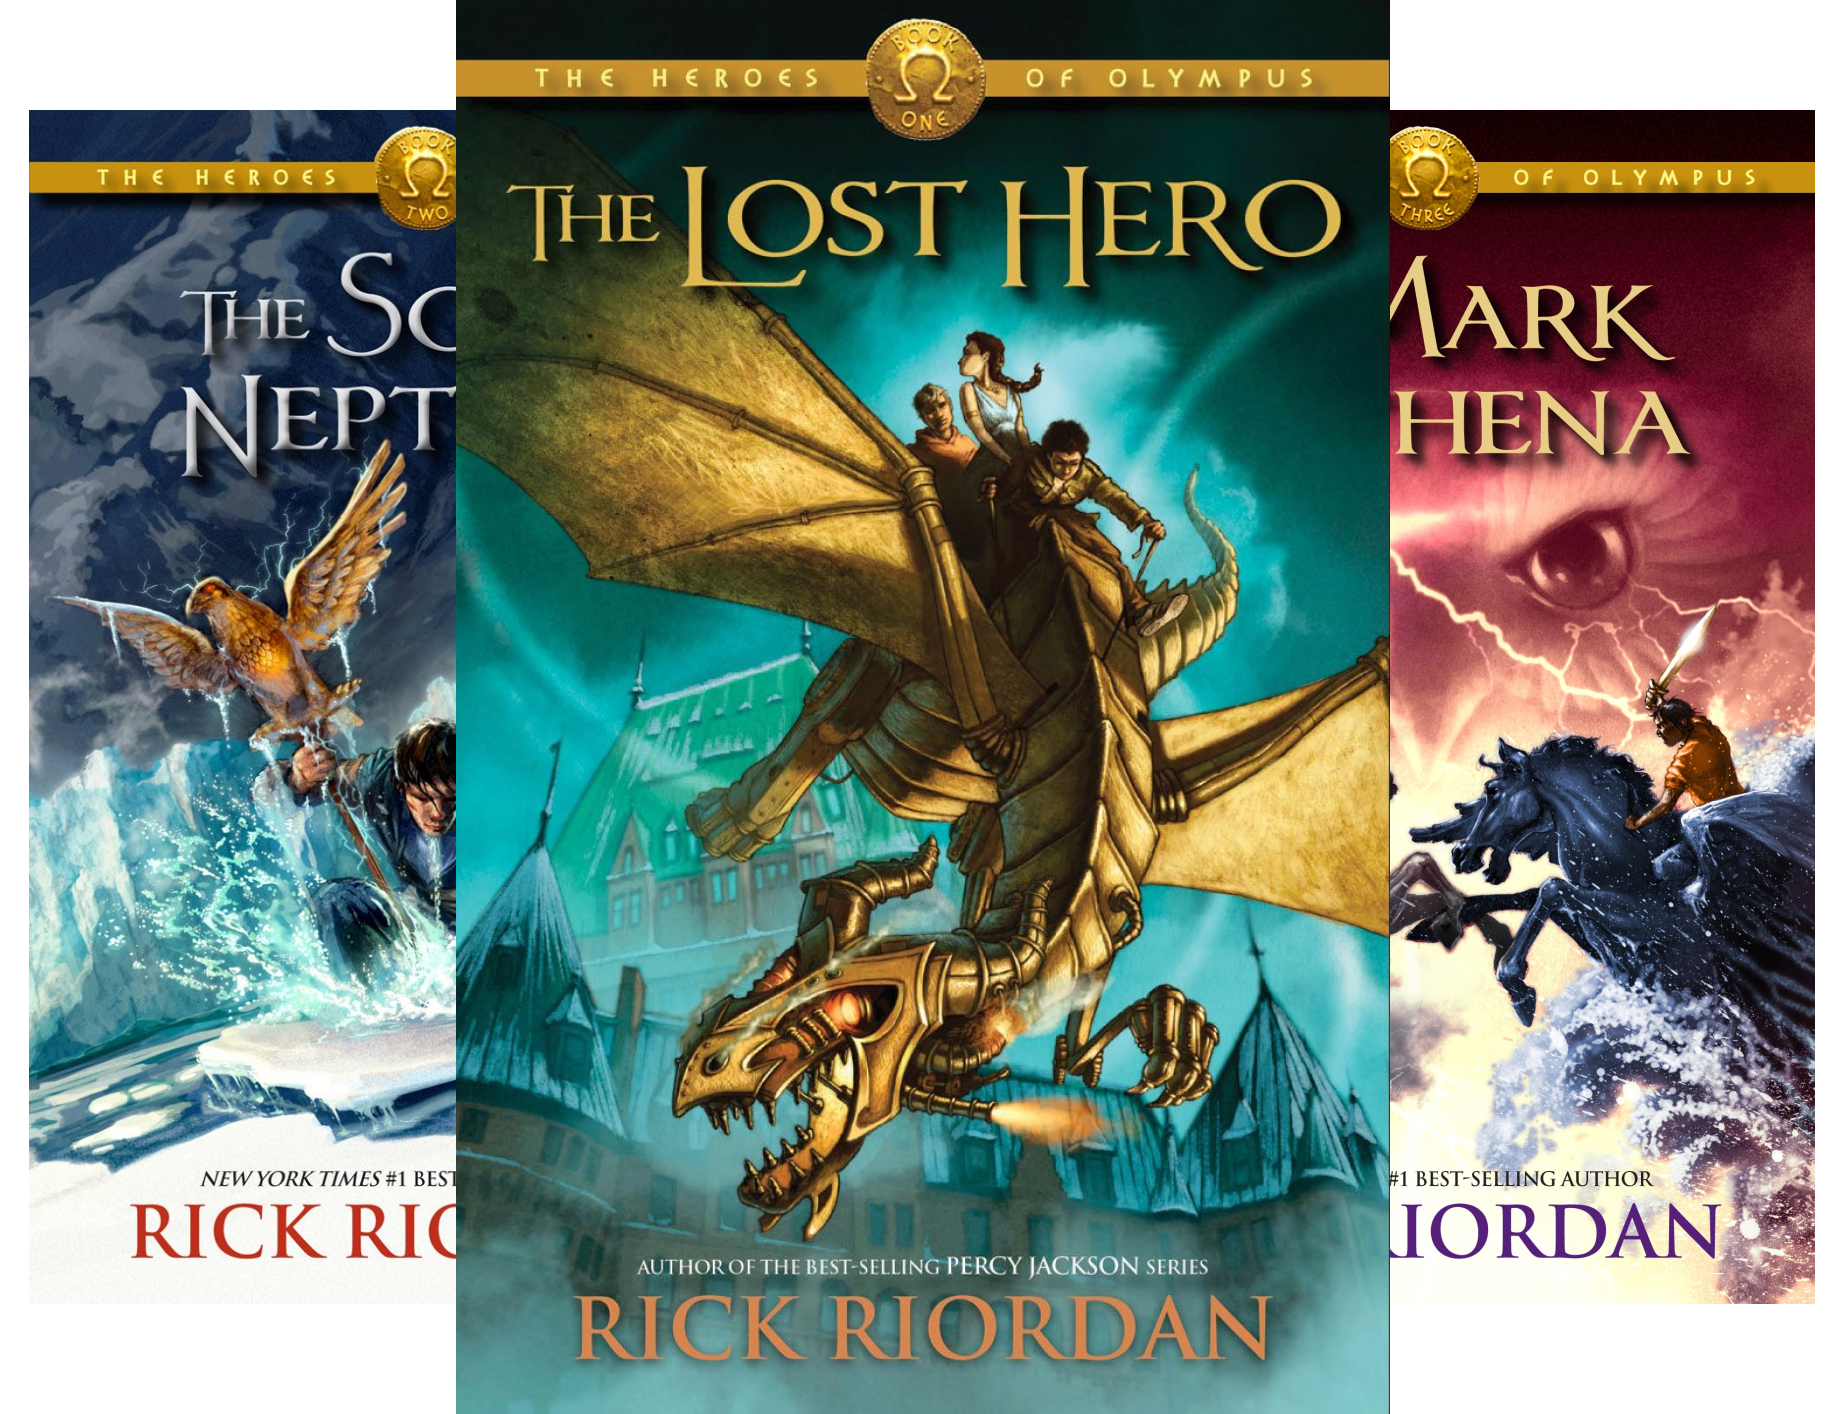 son of neptune by rick riordan The son of neptune (heroes of olympus book 2) by rick riordan, 9780141335735, available at book depository with free delivery worldwide.